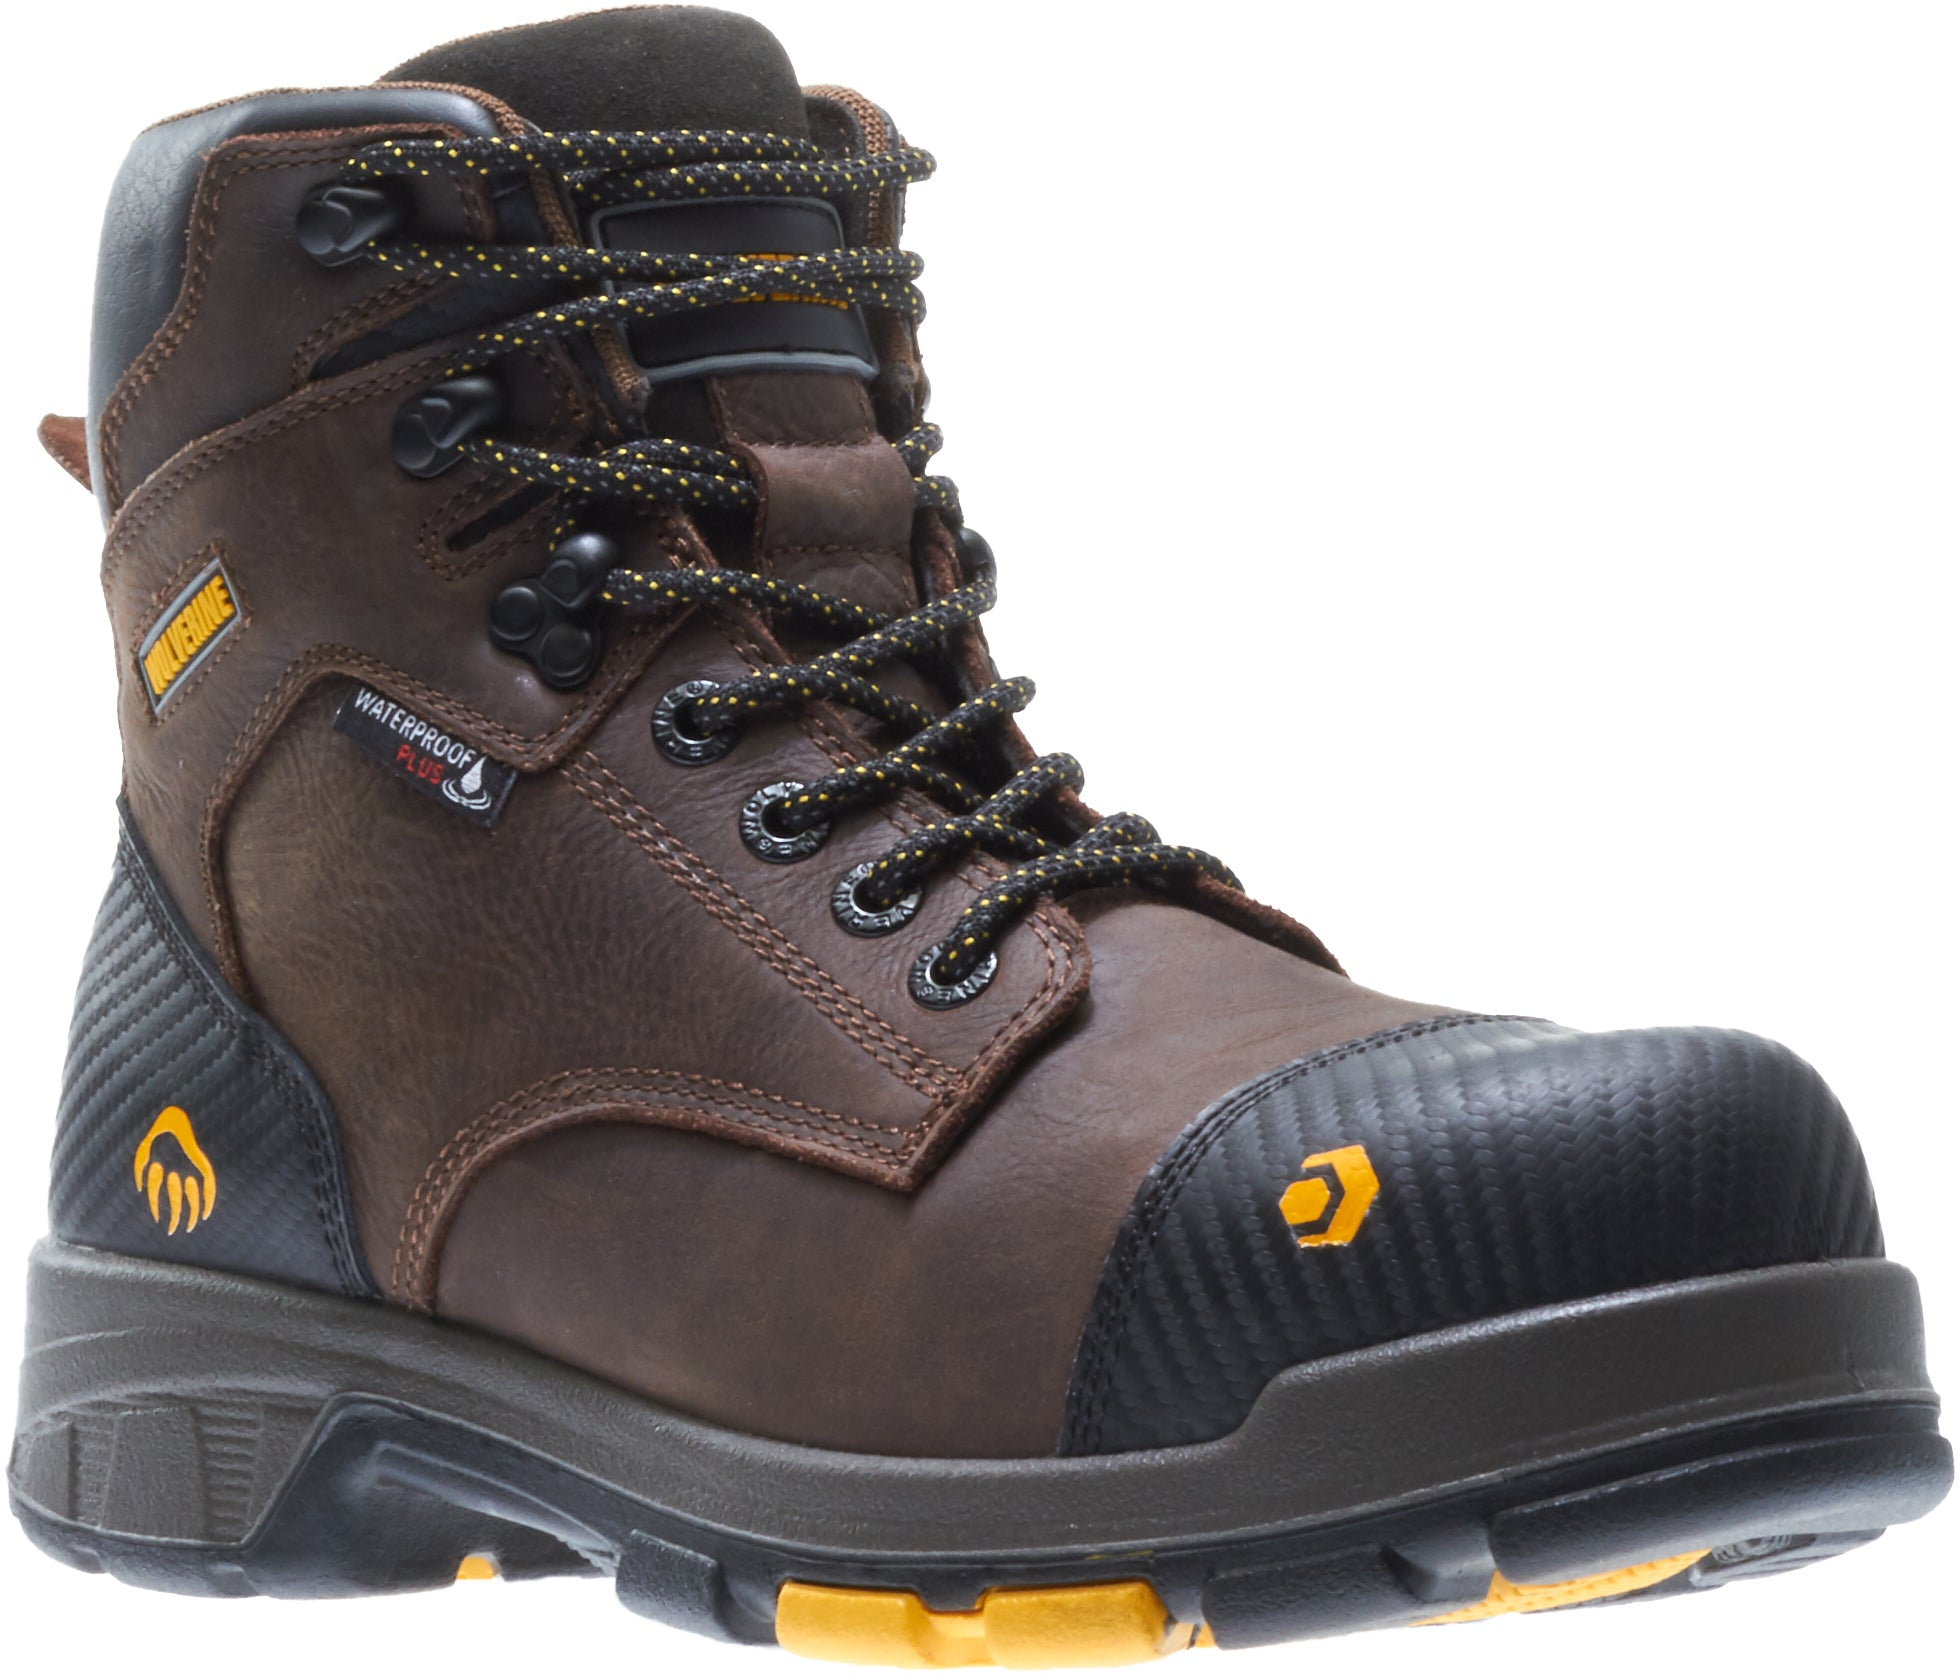 Blade LX Waterproof Met Guard Carbonmax Boot - Dark Brown / Black